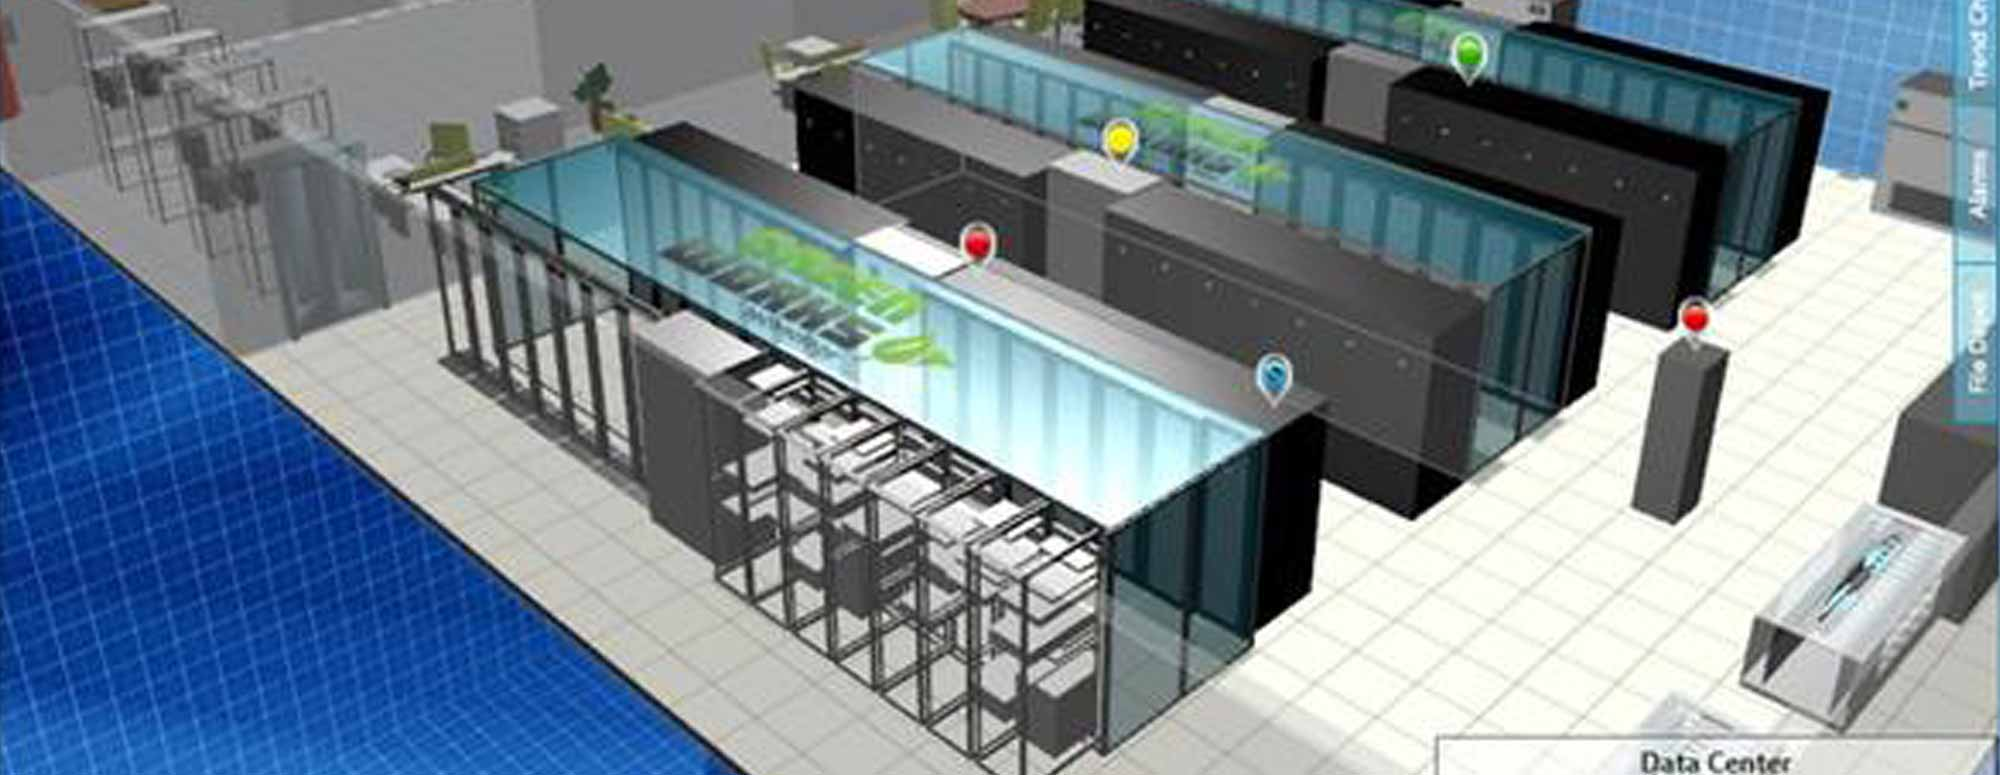 Why Cooling Cabinets are a Necessity for Server Rooms. - Data Center ...